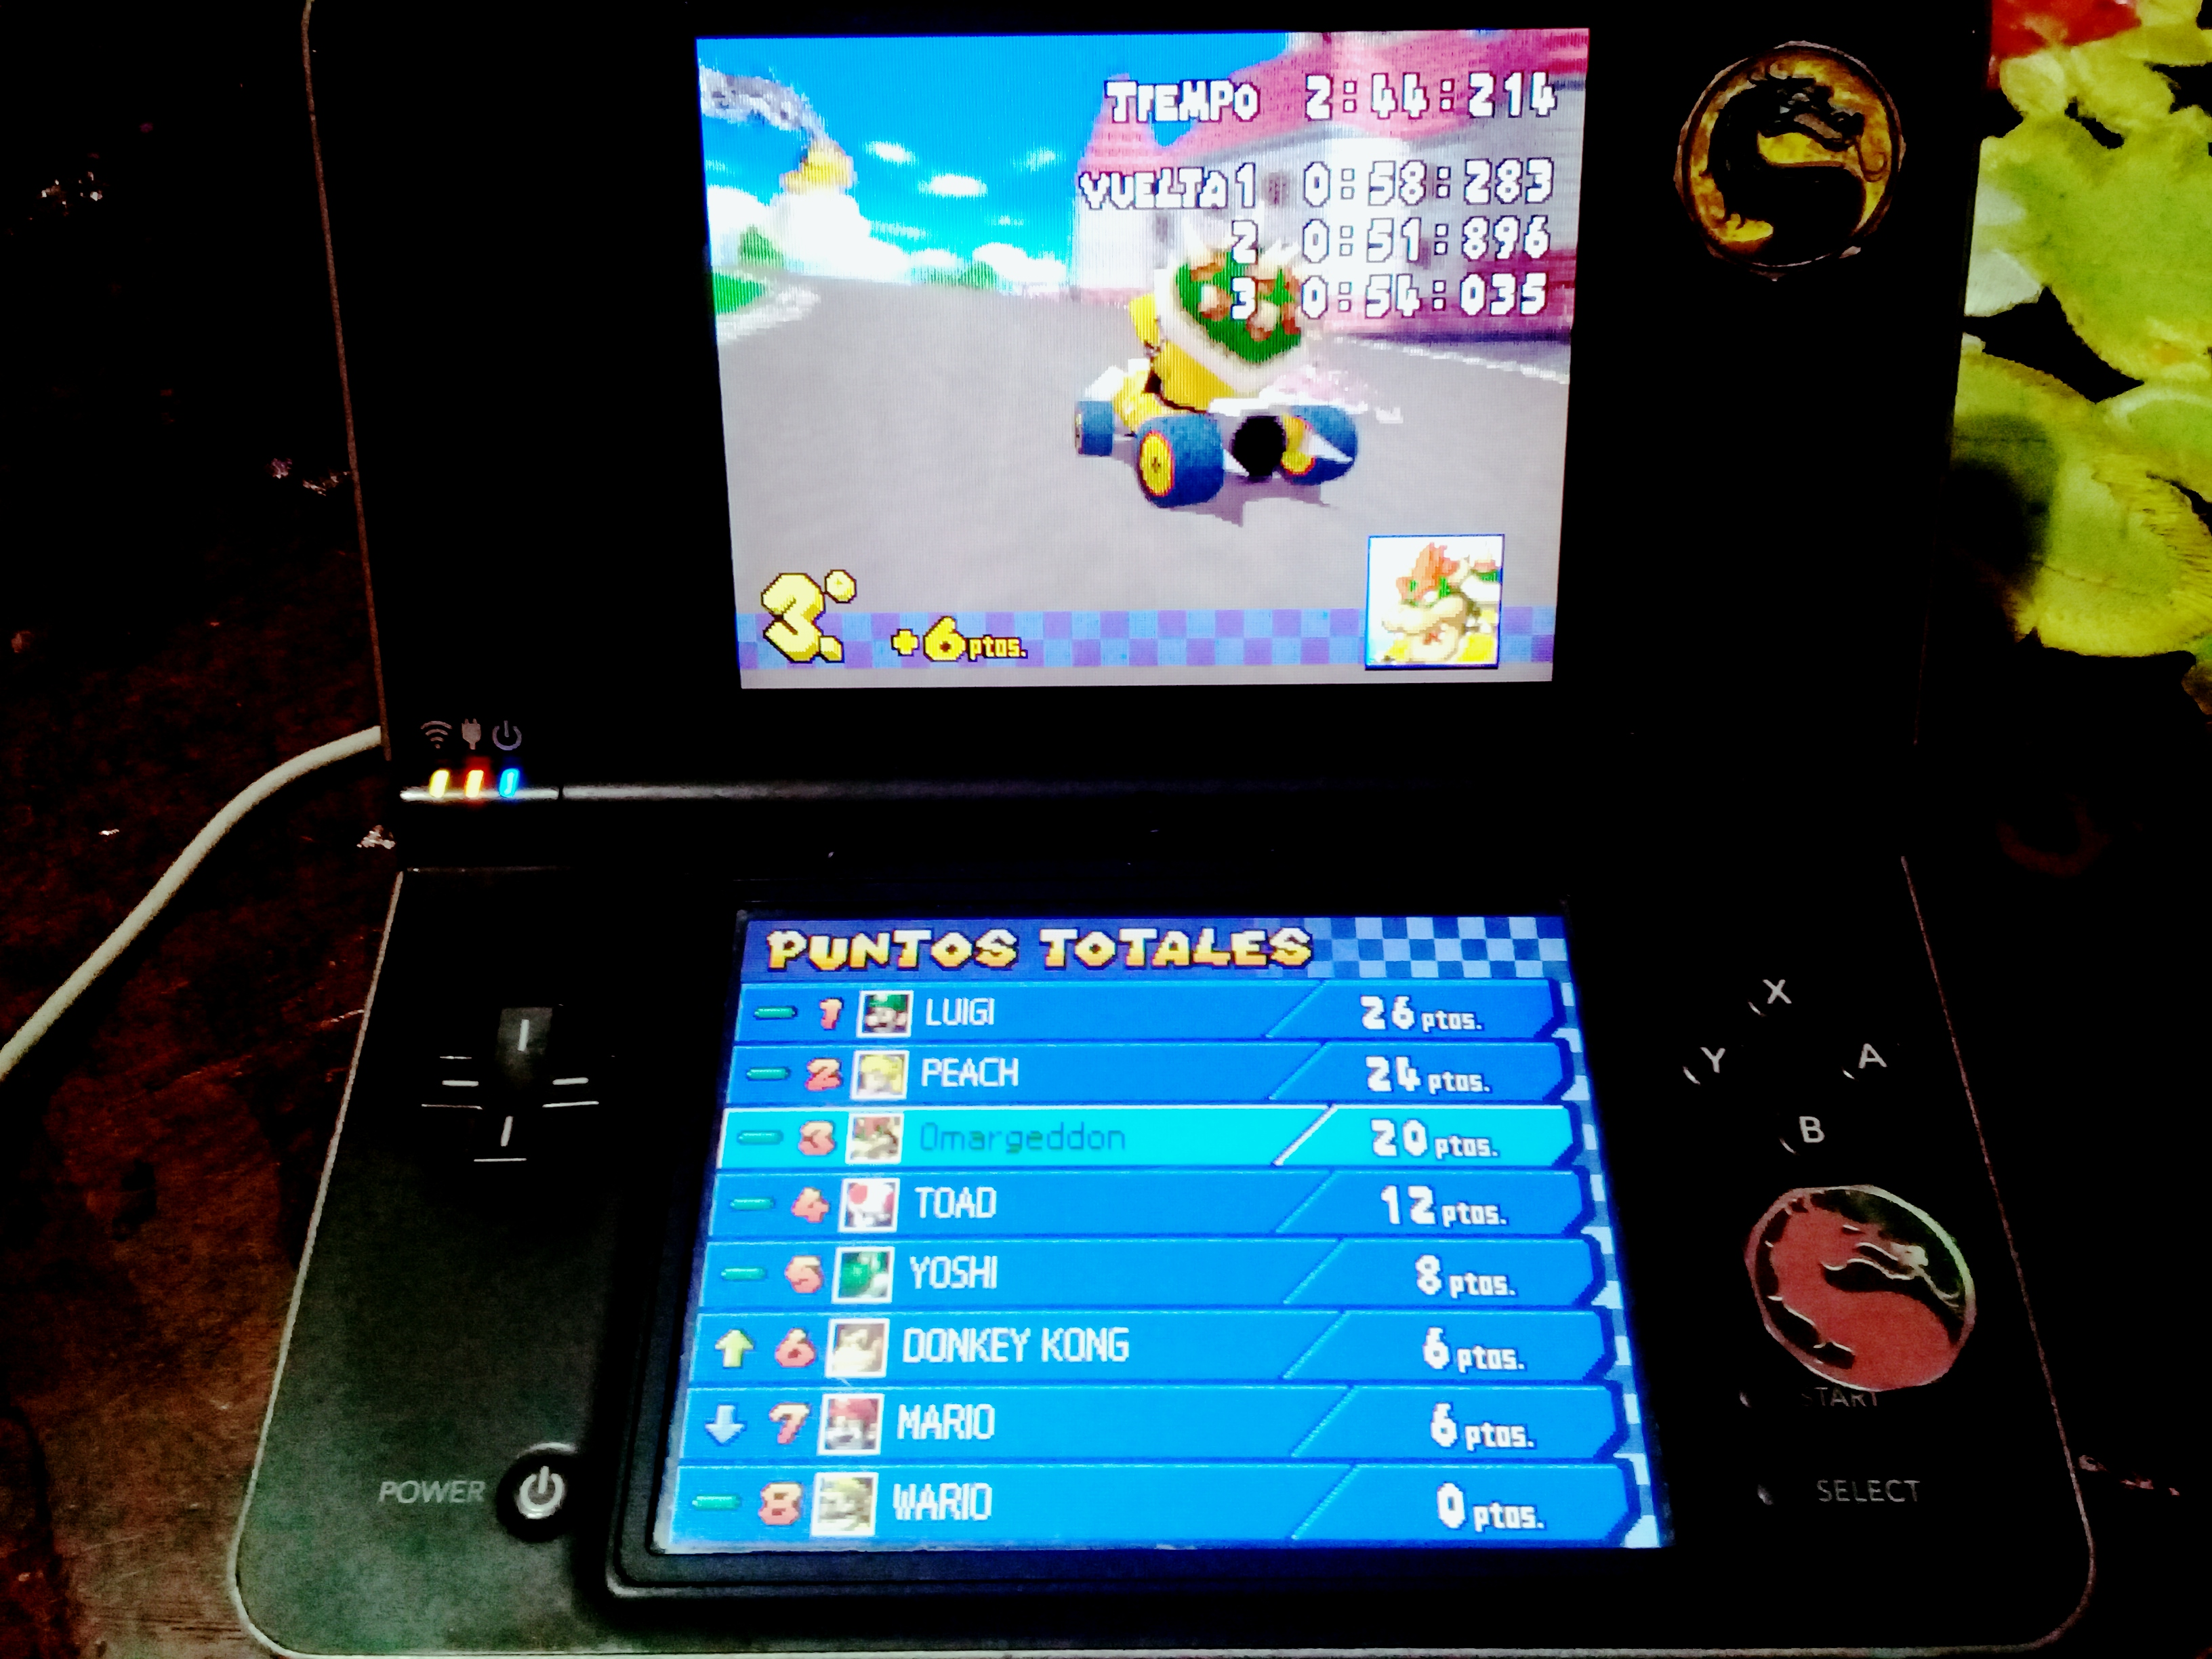 Mario Kart DS: Mario Circuit [100cc] [Lap Time] time of 0:00:51.896